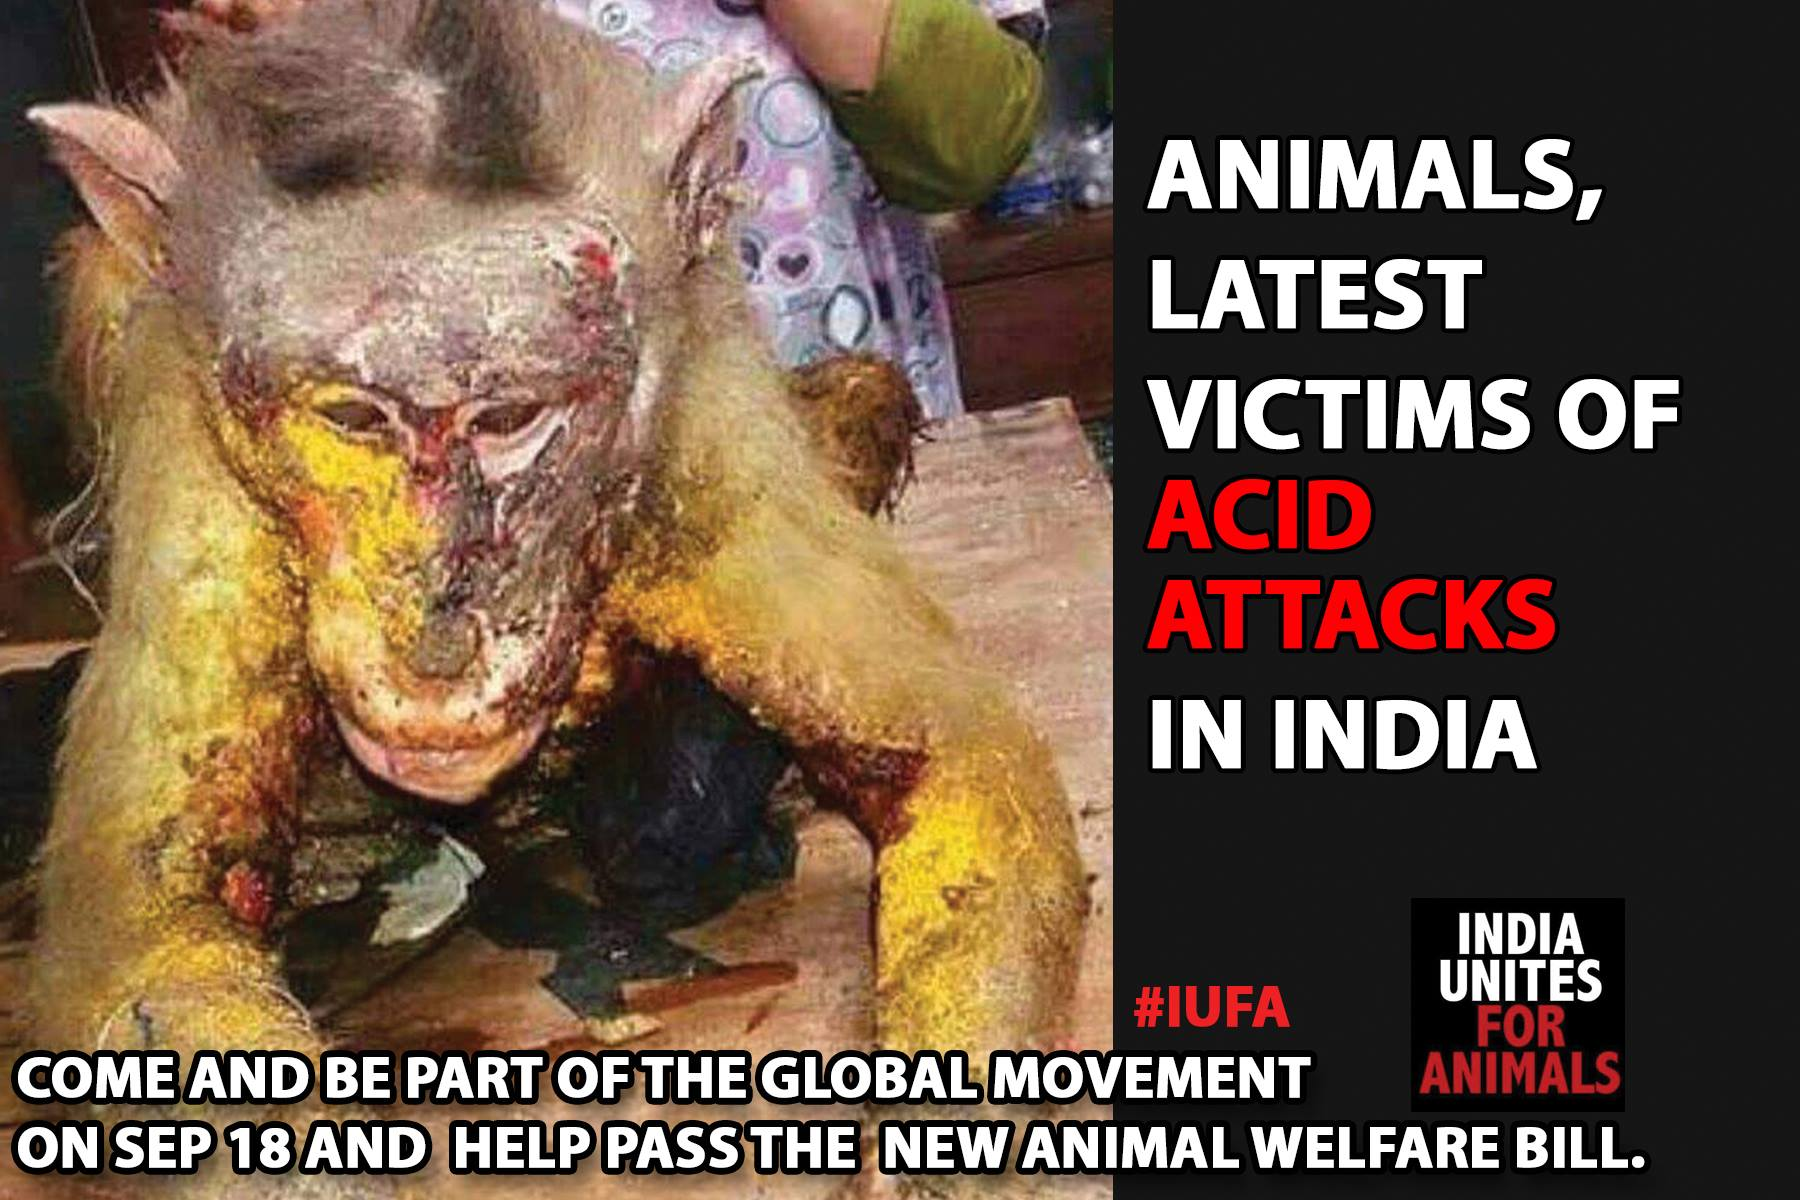 animal rights india Animal welfare and rights in india regards the treatment of and laws concerning non-human animals in india it is distinct from animal conservation in india india is home to several.